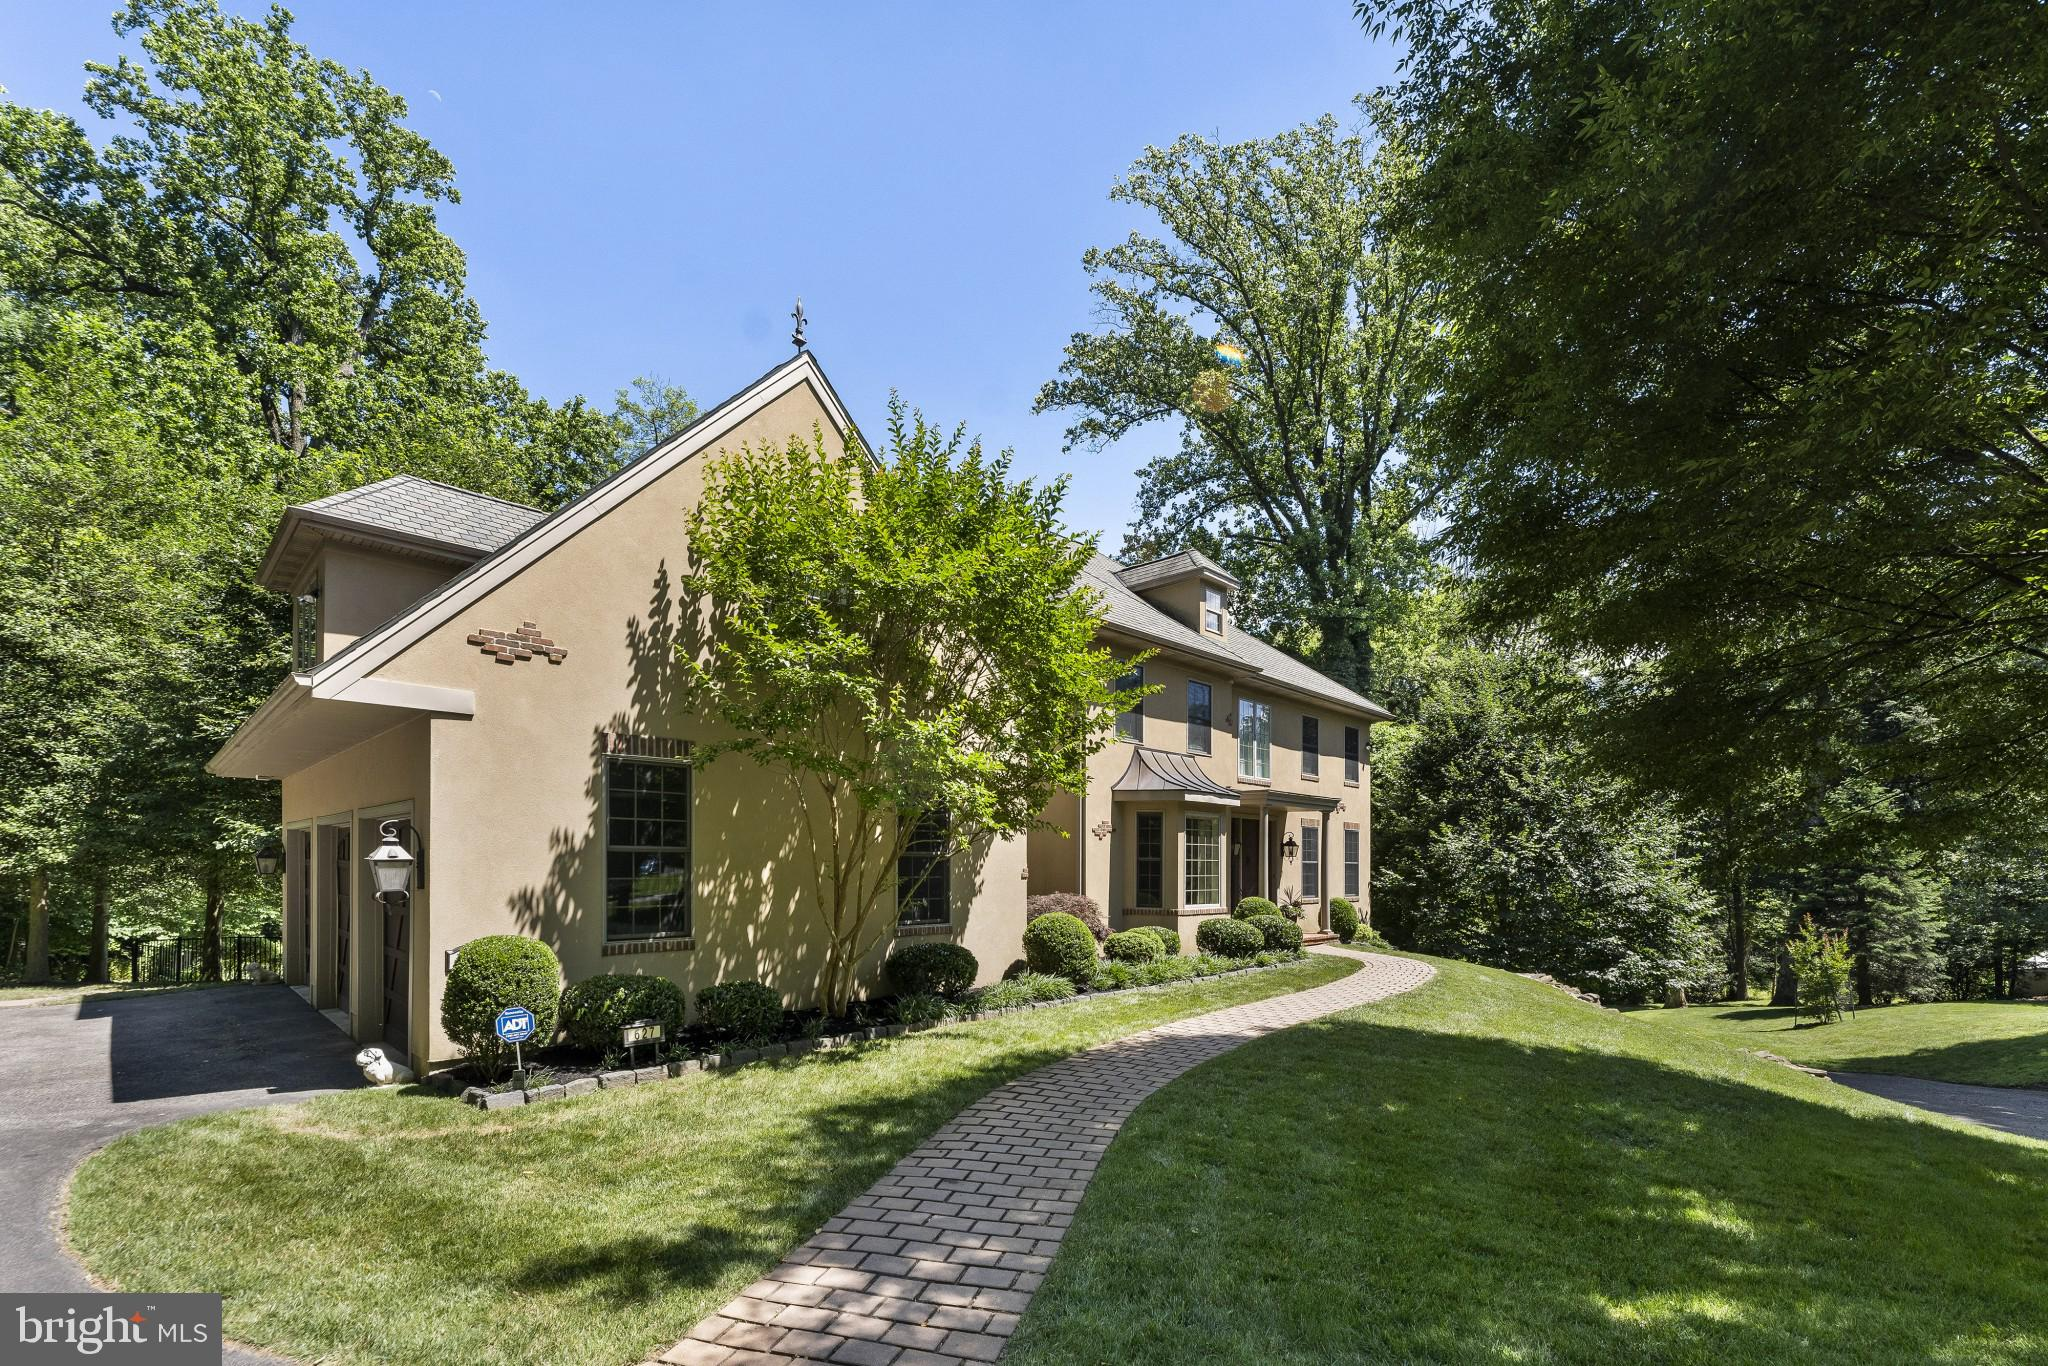 Welcome to 627 Broad Acres Road in highly sought-after Penn Valley and Lower Merion School District. This gorgeous custom-built French Colonial sits on a quiet, interior lot, and features a three-car garage, a stunning pool and spa, and beautifully manicured grounds. The formal Living Room with a fireplace, luxury wainscotting, and crown molding, lies opposite the formal oversized Dining Room, with a bay window drenching the room with natural light. The home features a phenomenal gourmet kitchen with matching wood fronts on appliances, custom luxury cabinetry, double wall ovens, custom-cut granite countertops, tile backsplash, a huge island with a warming drawer, and hanging lights, and a hand-stamped farmhouse sink. A Butler's Pantry with a wine cooler lies between the dining room and kitchen. The kitchen flows into the Great Room with a second majestic fireplace, coffered ceilings with recessed lighting, and plenty of space for family nights or get-togethers. The home also features a first-floor study, perfect for today's environment. Moving to the second floor, the sumptuous Master Quarters have vaulted ceilings, his and her oversized walk-in closets with shelving, a sitting area being used as a sauna room, and a Master Bath that is spacious, lavish, and filled with upgrades. Featured on the second floor are three additional generously sized bedrooms, one with a full bathroom, along with one hallway bathroom. The finished walk-out basement is an incredible amenity as well, with its spaciousness, recessed lighting, natural light, powder room, and bedroom area. The back exterior of the property is truly an oasis. The home features a custom-heated saltwater pool and spa, a rarity among similar properties. This home offers every amenity possible for extraordinary living: wainscotting, whole house vacuum, exterior electric dog fence, full house sound system, second-floor laundry, all in an extremely sought-after area known for its luxury and convenience. Come see this